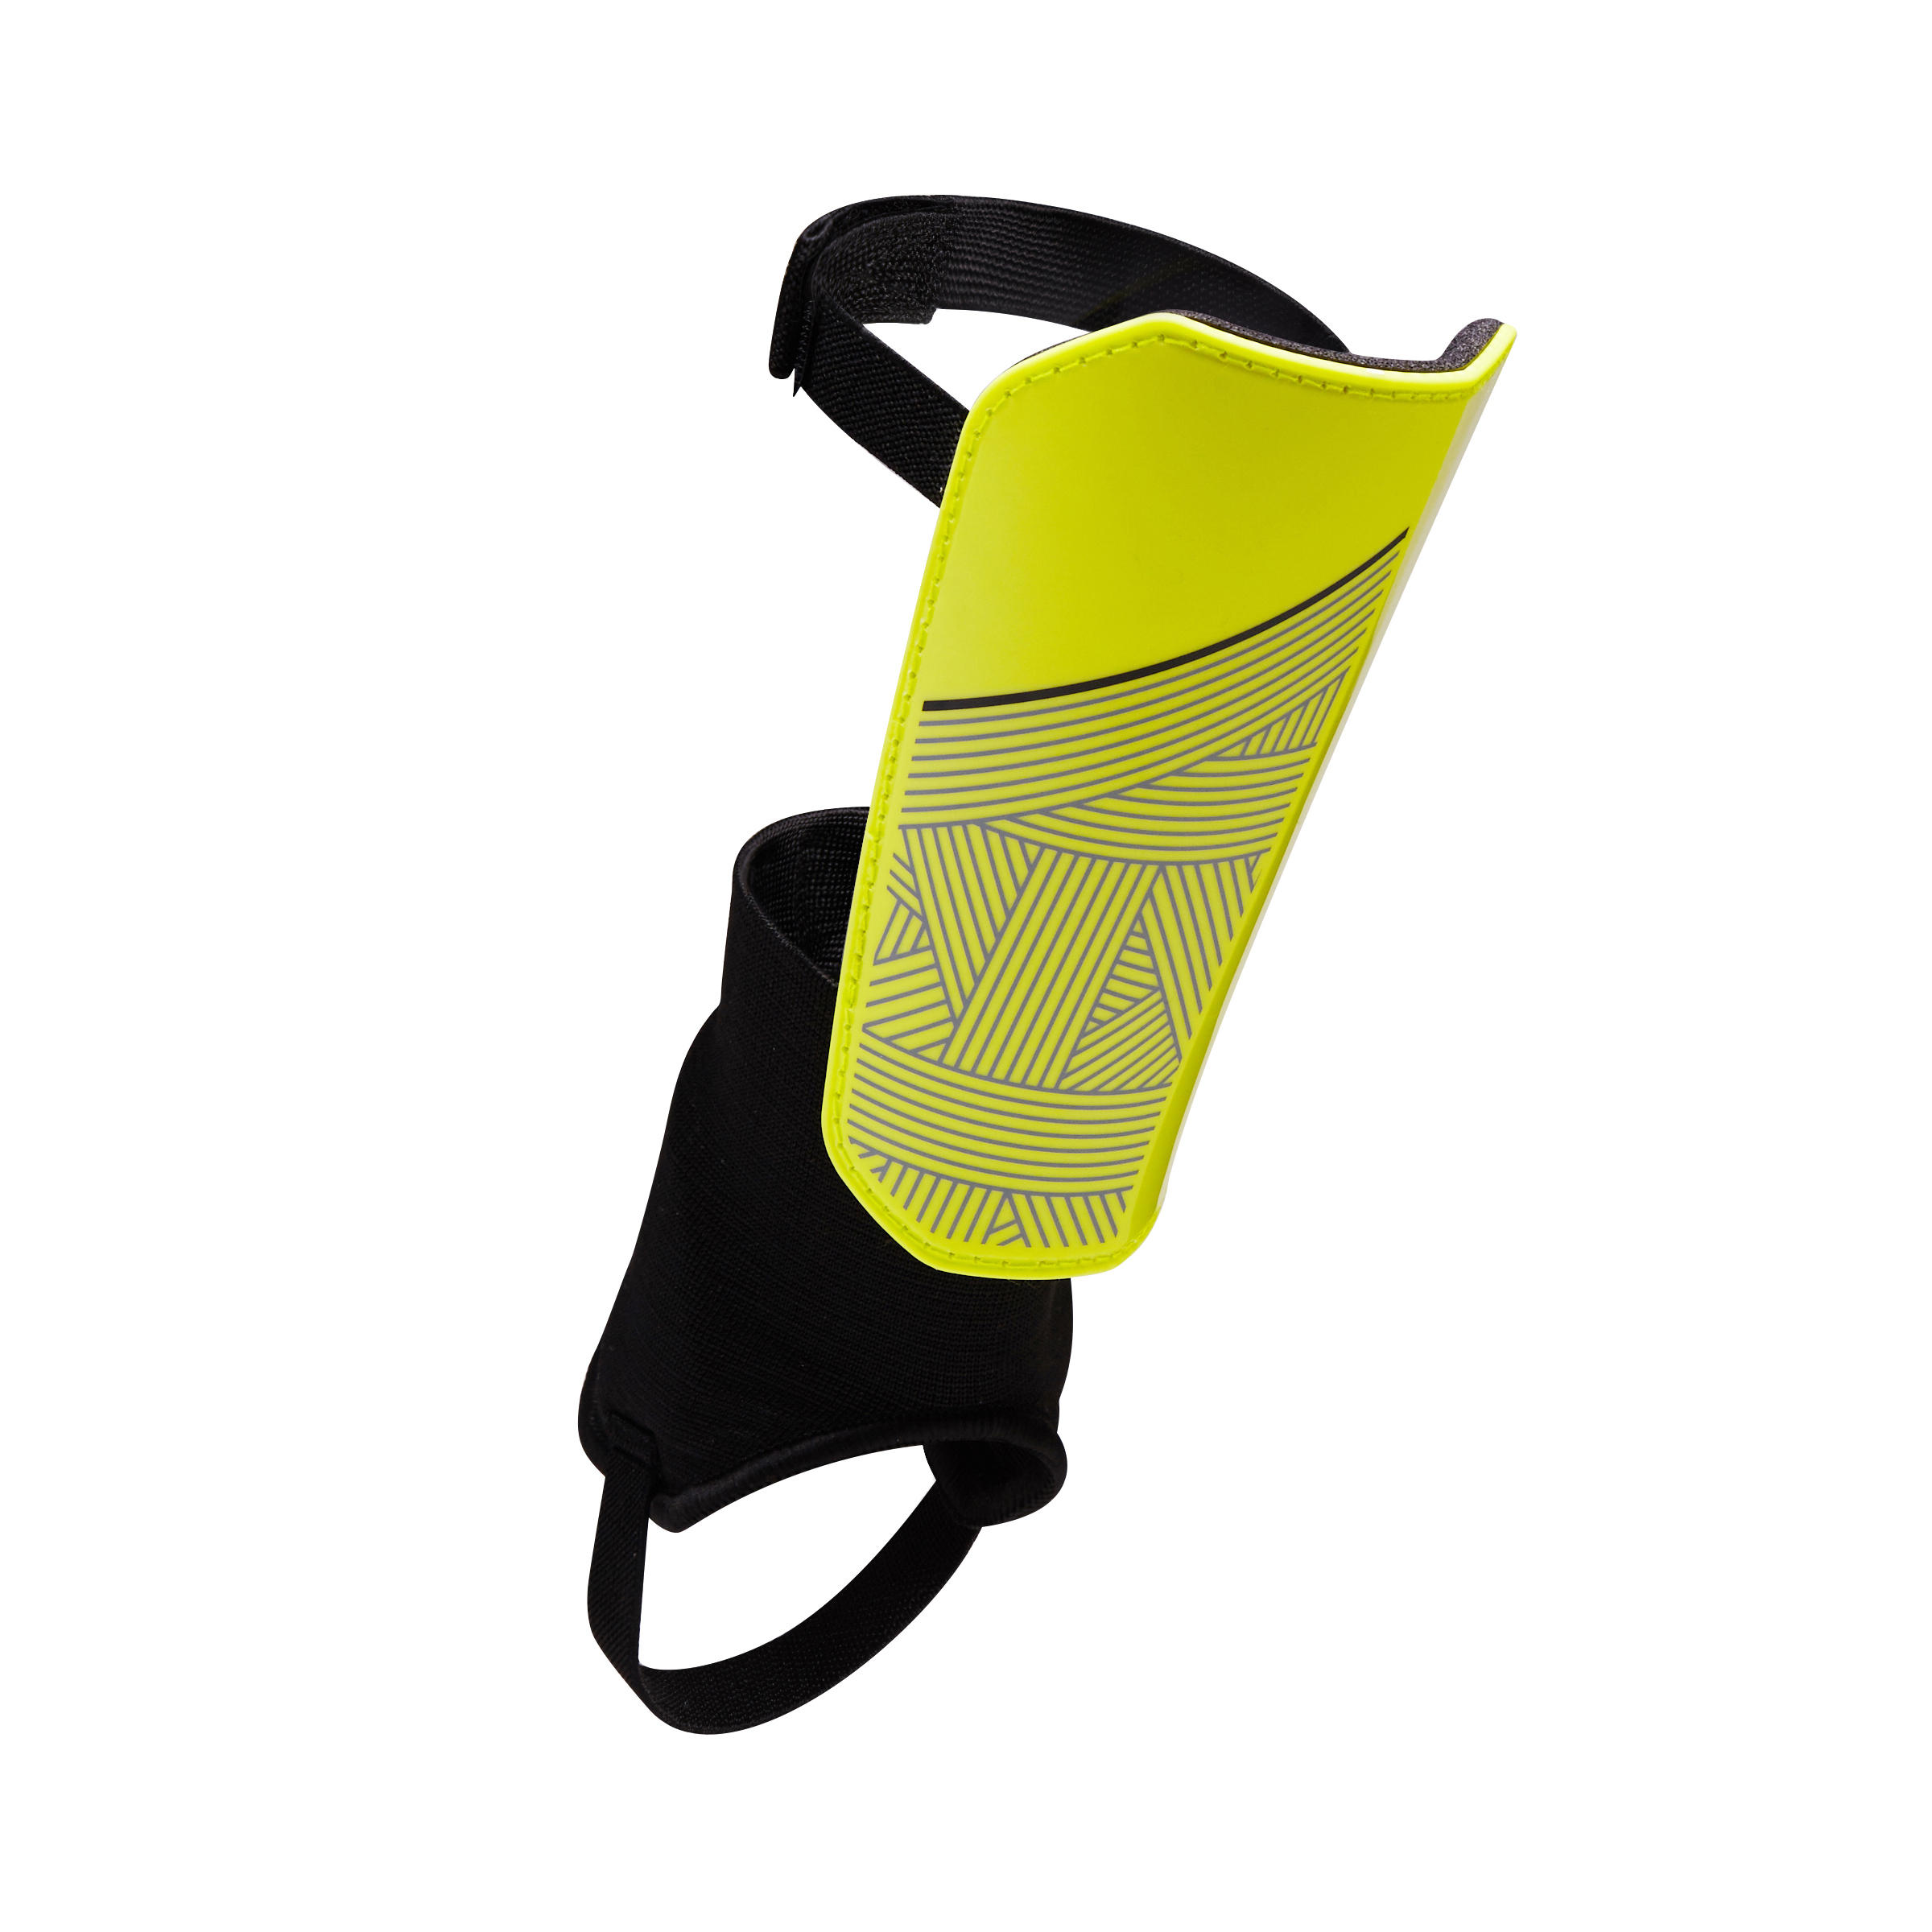 F140 Adult Soccer Shin Pad (separable Ankle Pad) - Yellow/Black